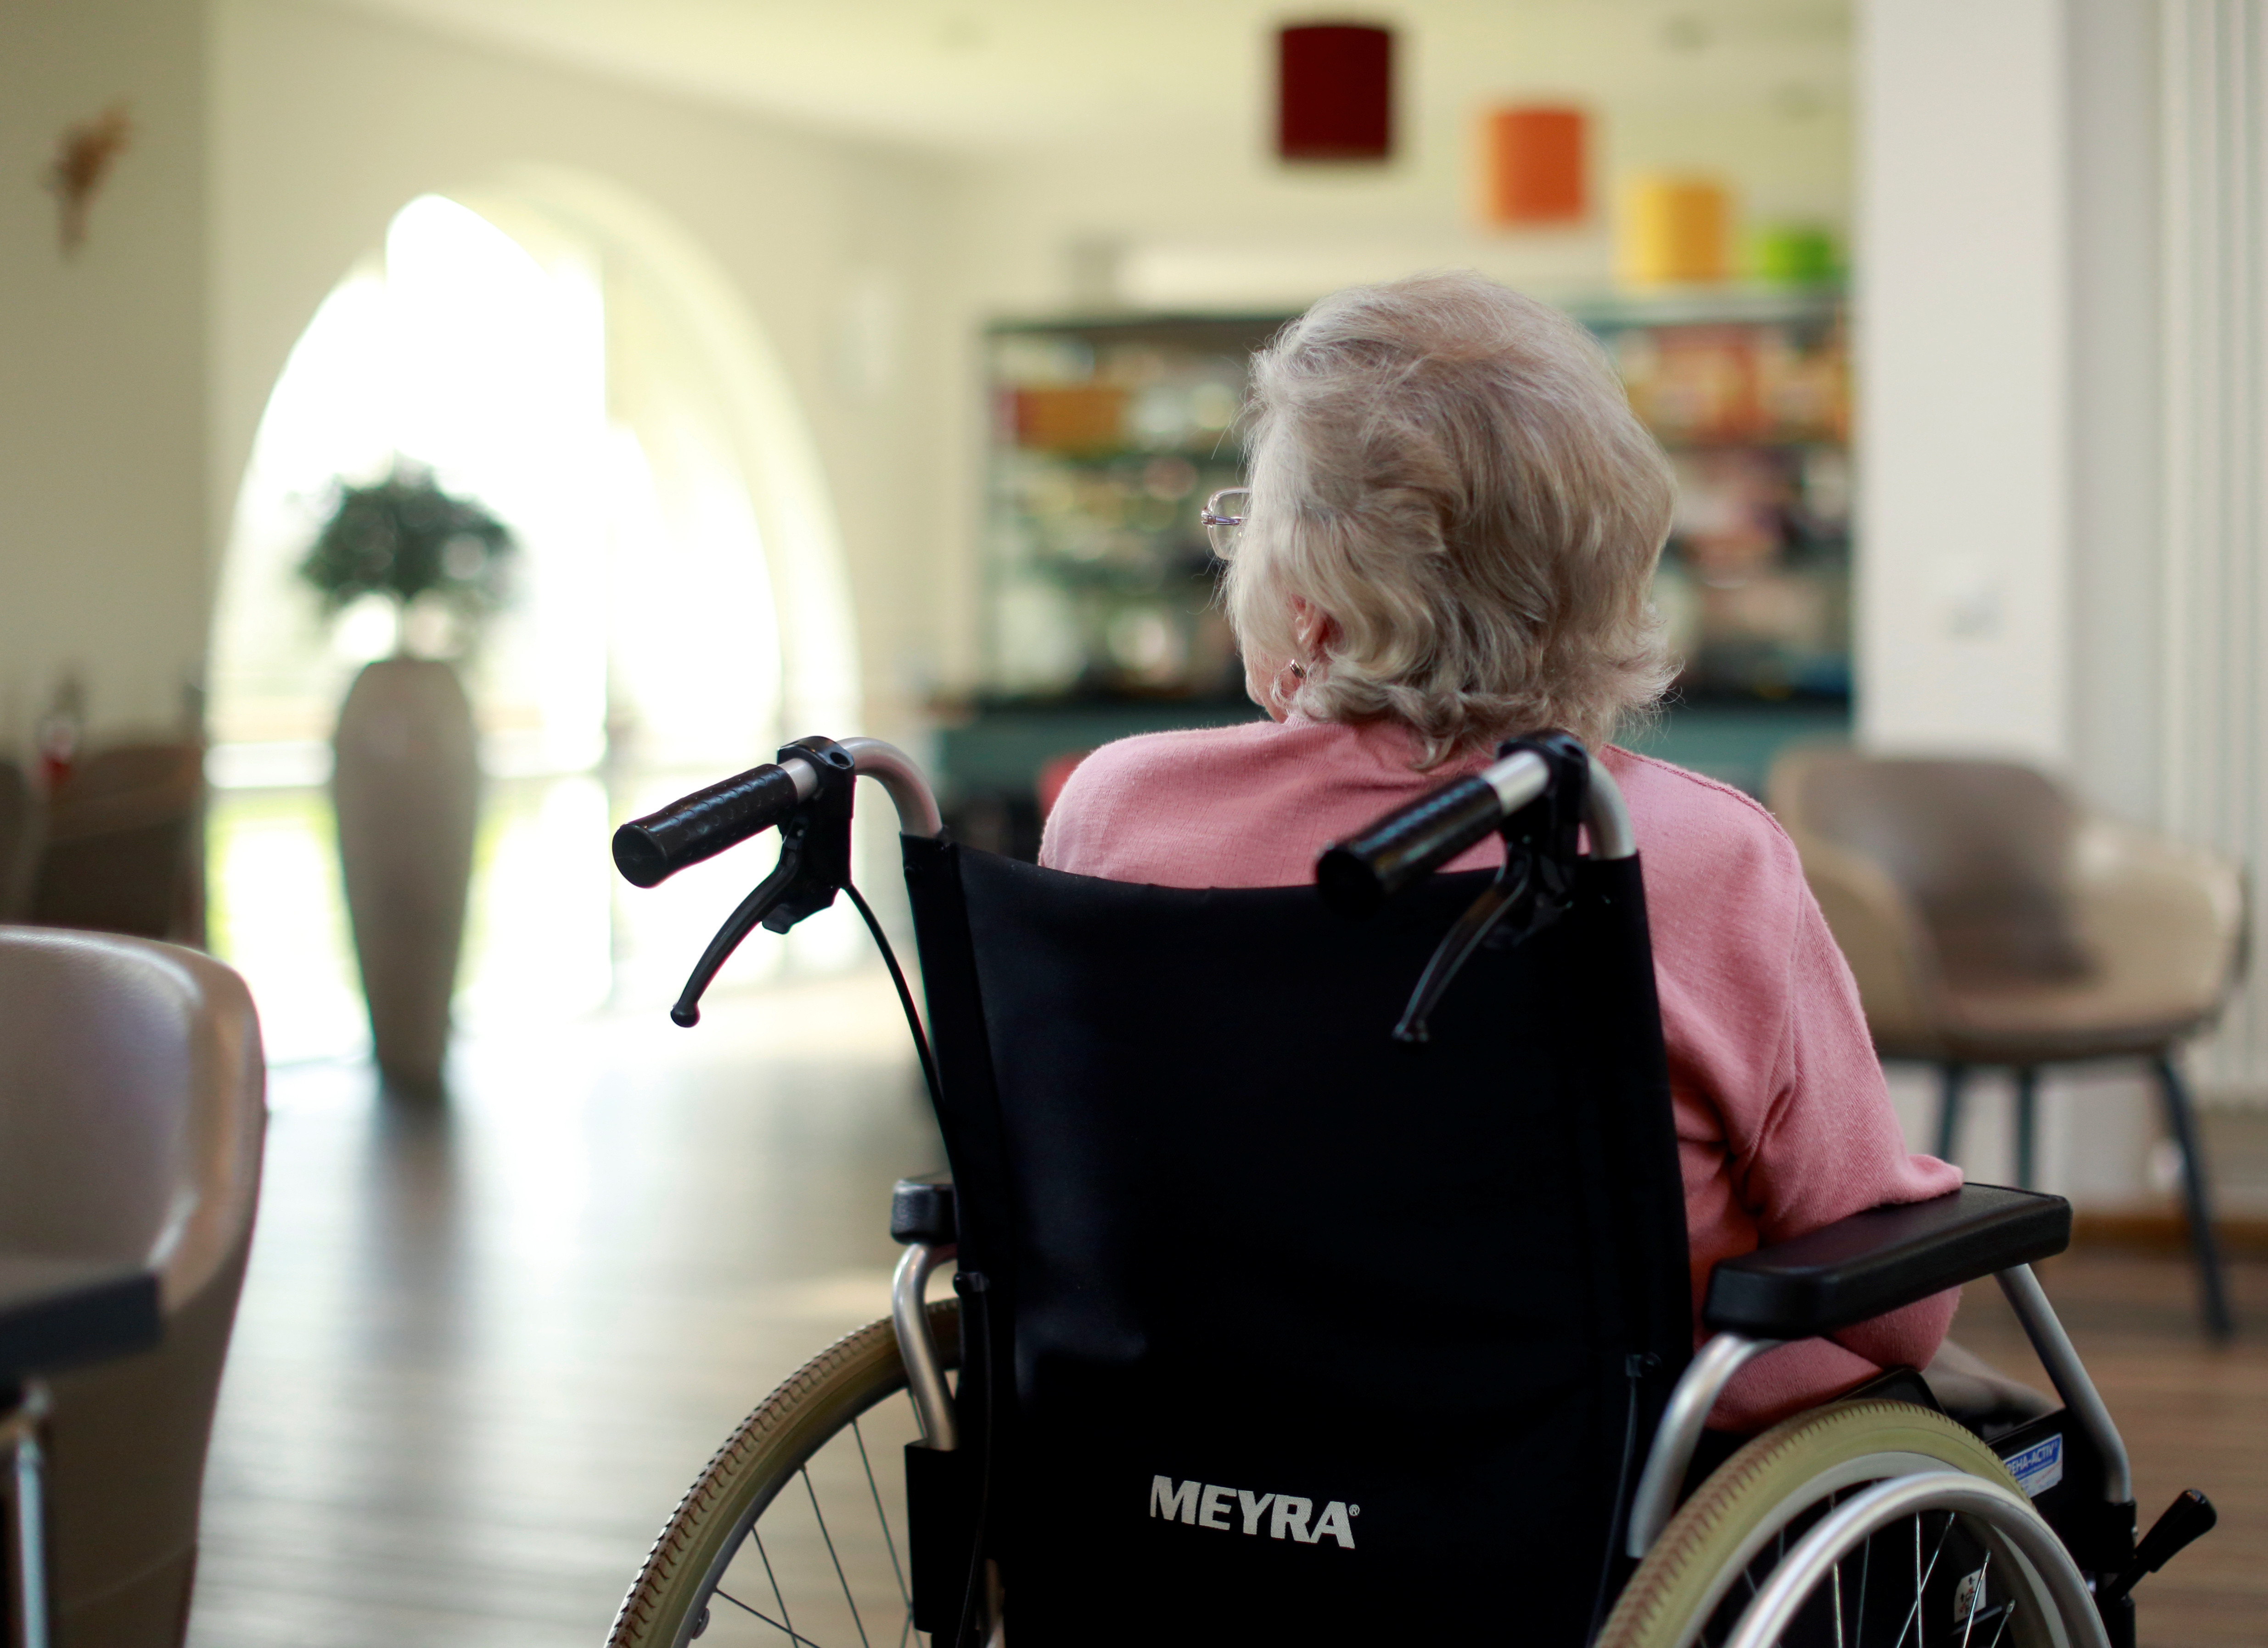 An elderly woman sits in the recreation room of a retirement home as visits have been restricted due to the coronavirus disease (COVID-19) concerns in Grevenbroich, Germany, March 16, 2020.